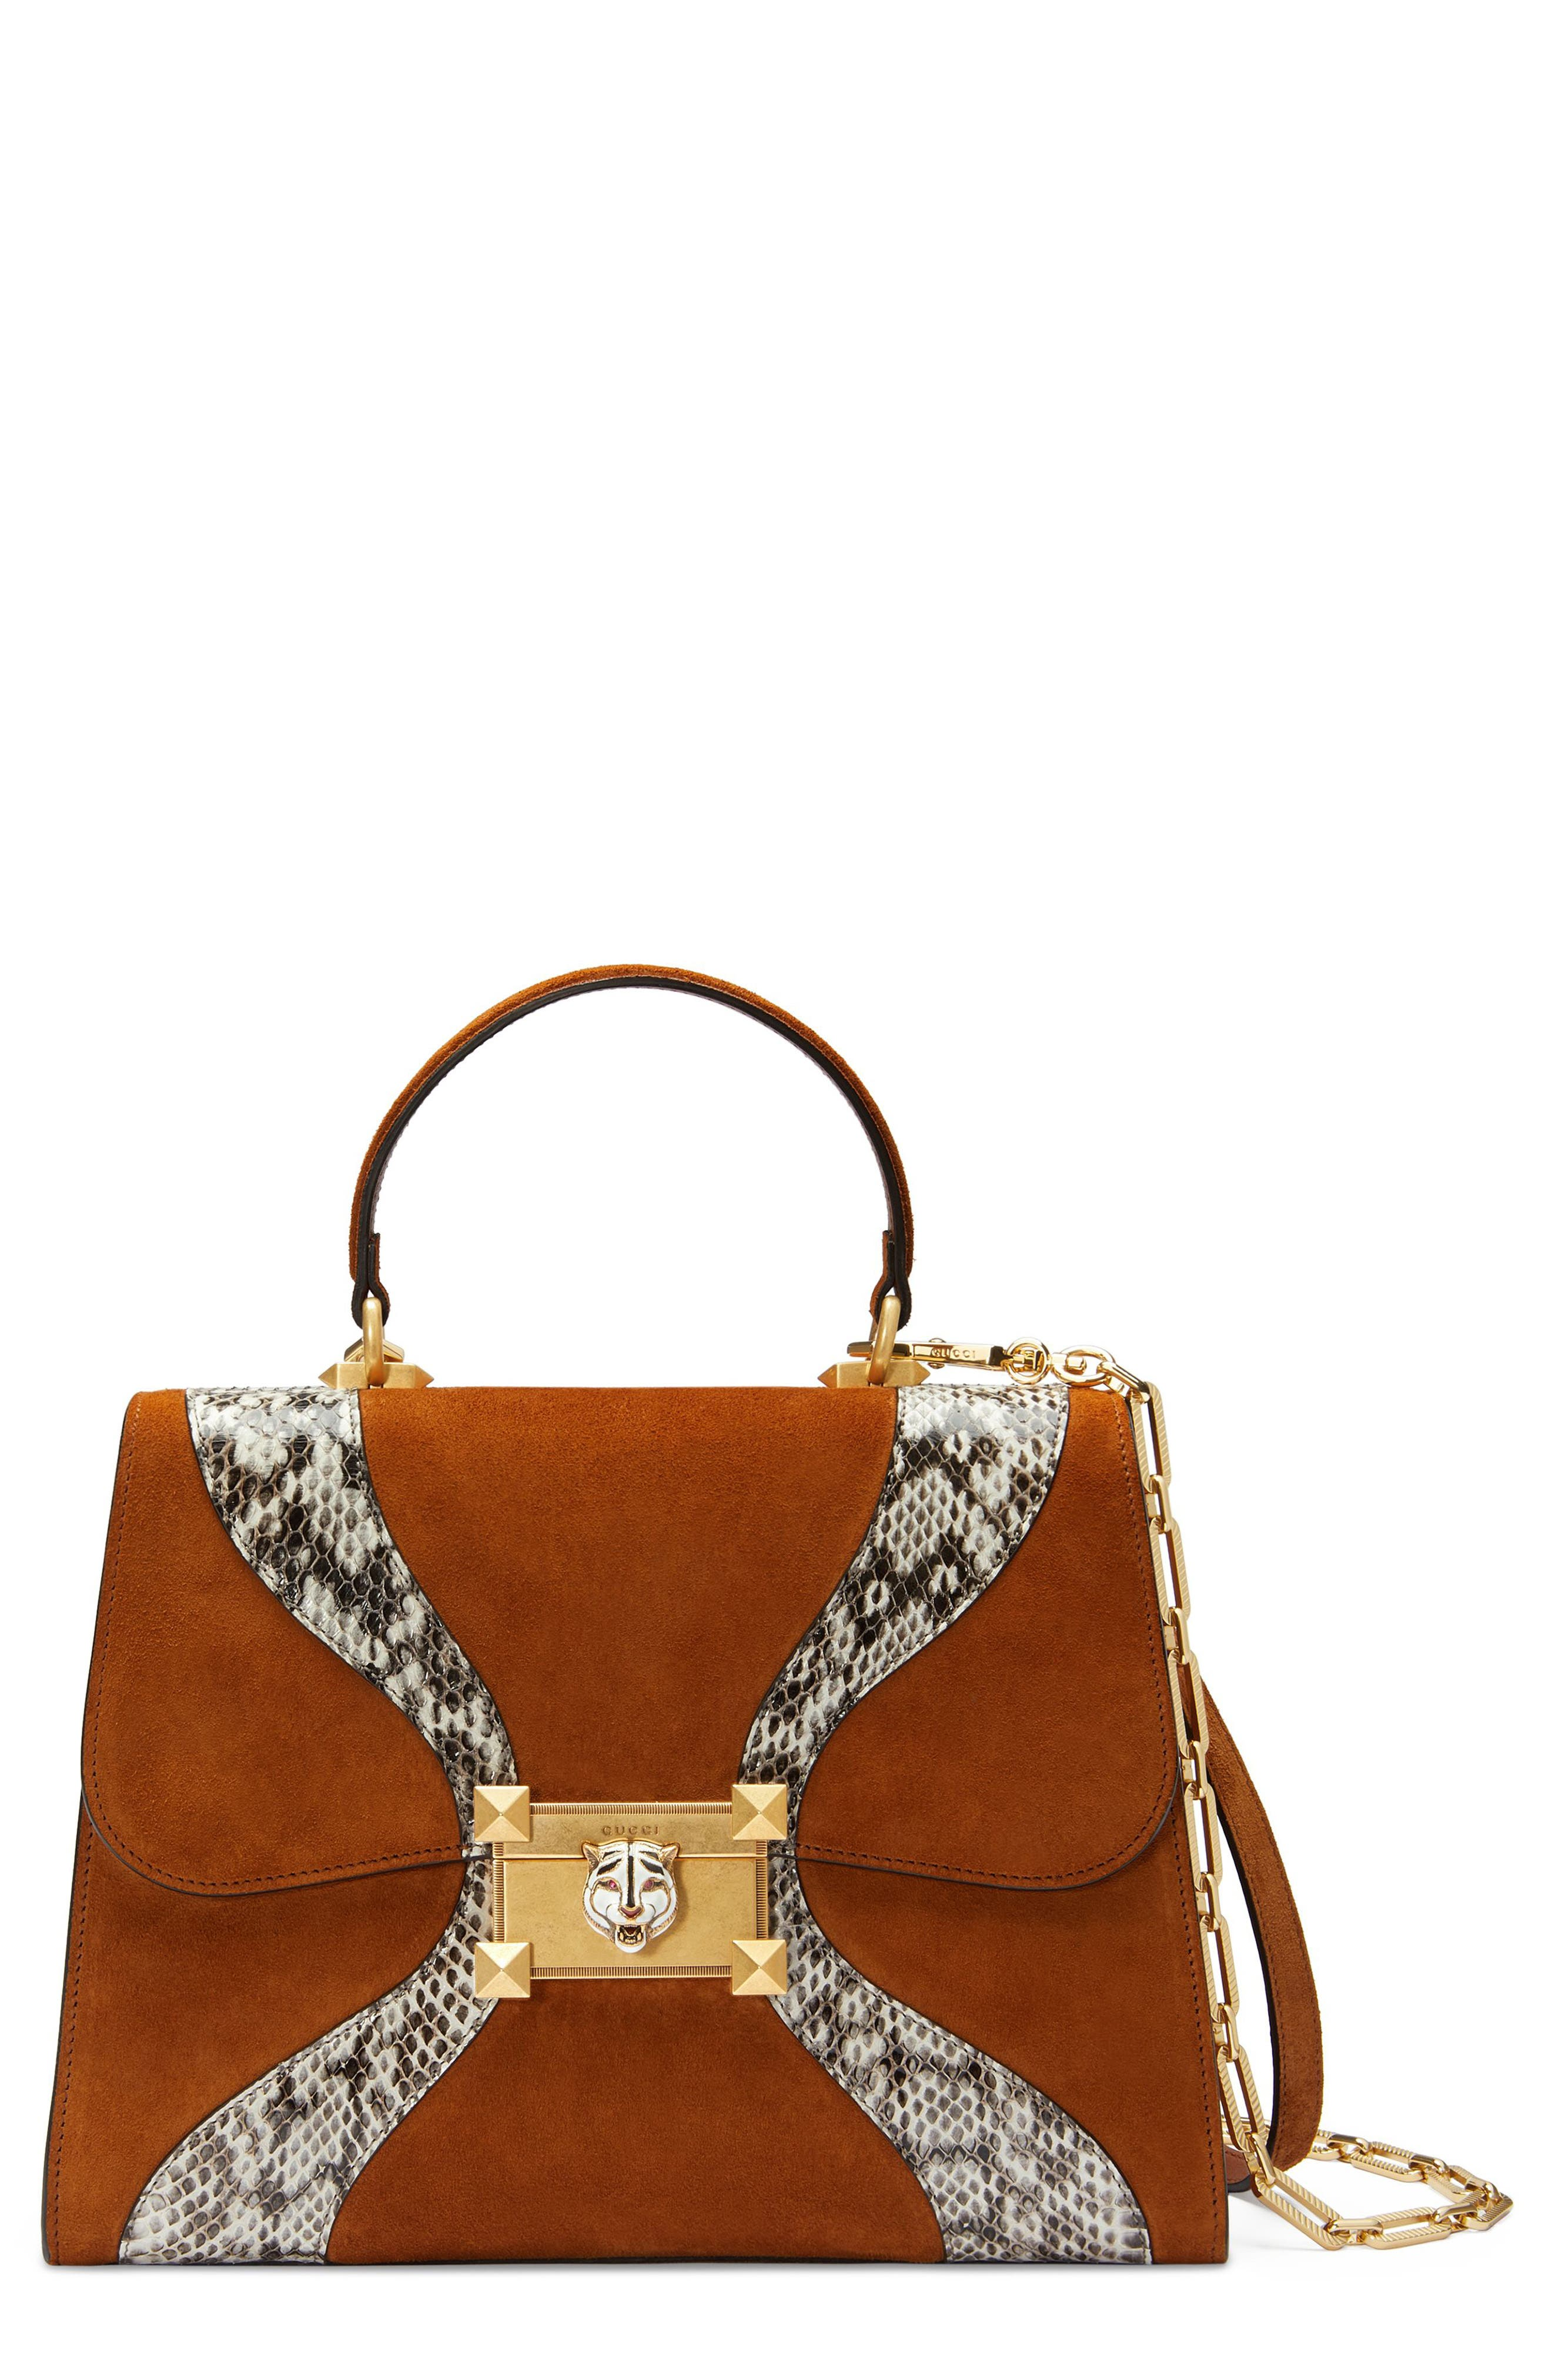 Small Osiride Leather & Canvas Top Handle Satchel,                         Main,                         color, BRIGHT CUIR/ ROCCIA